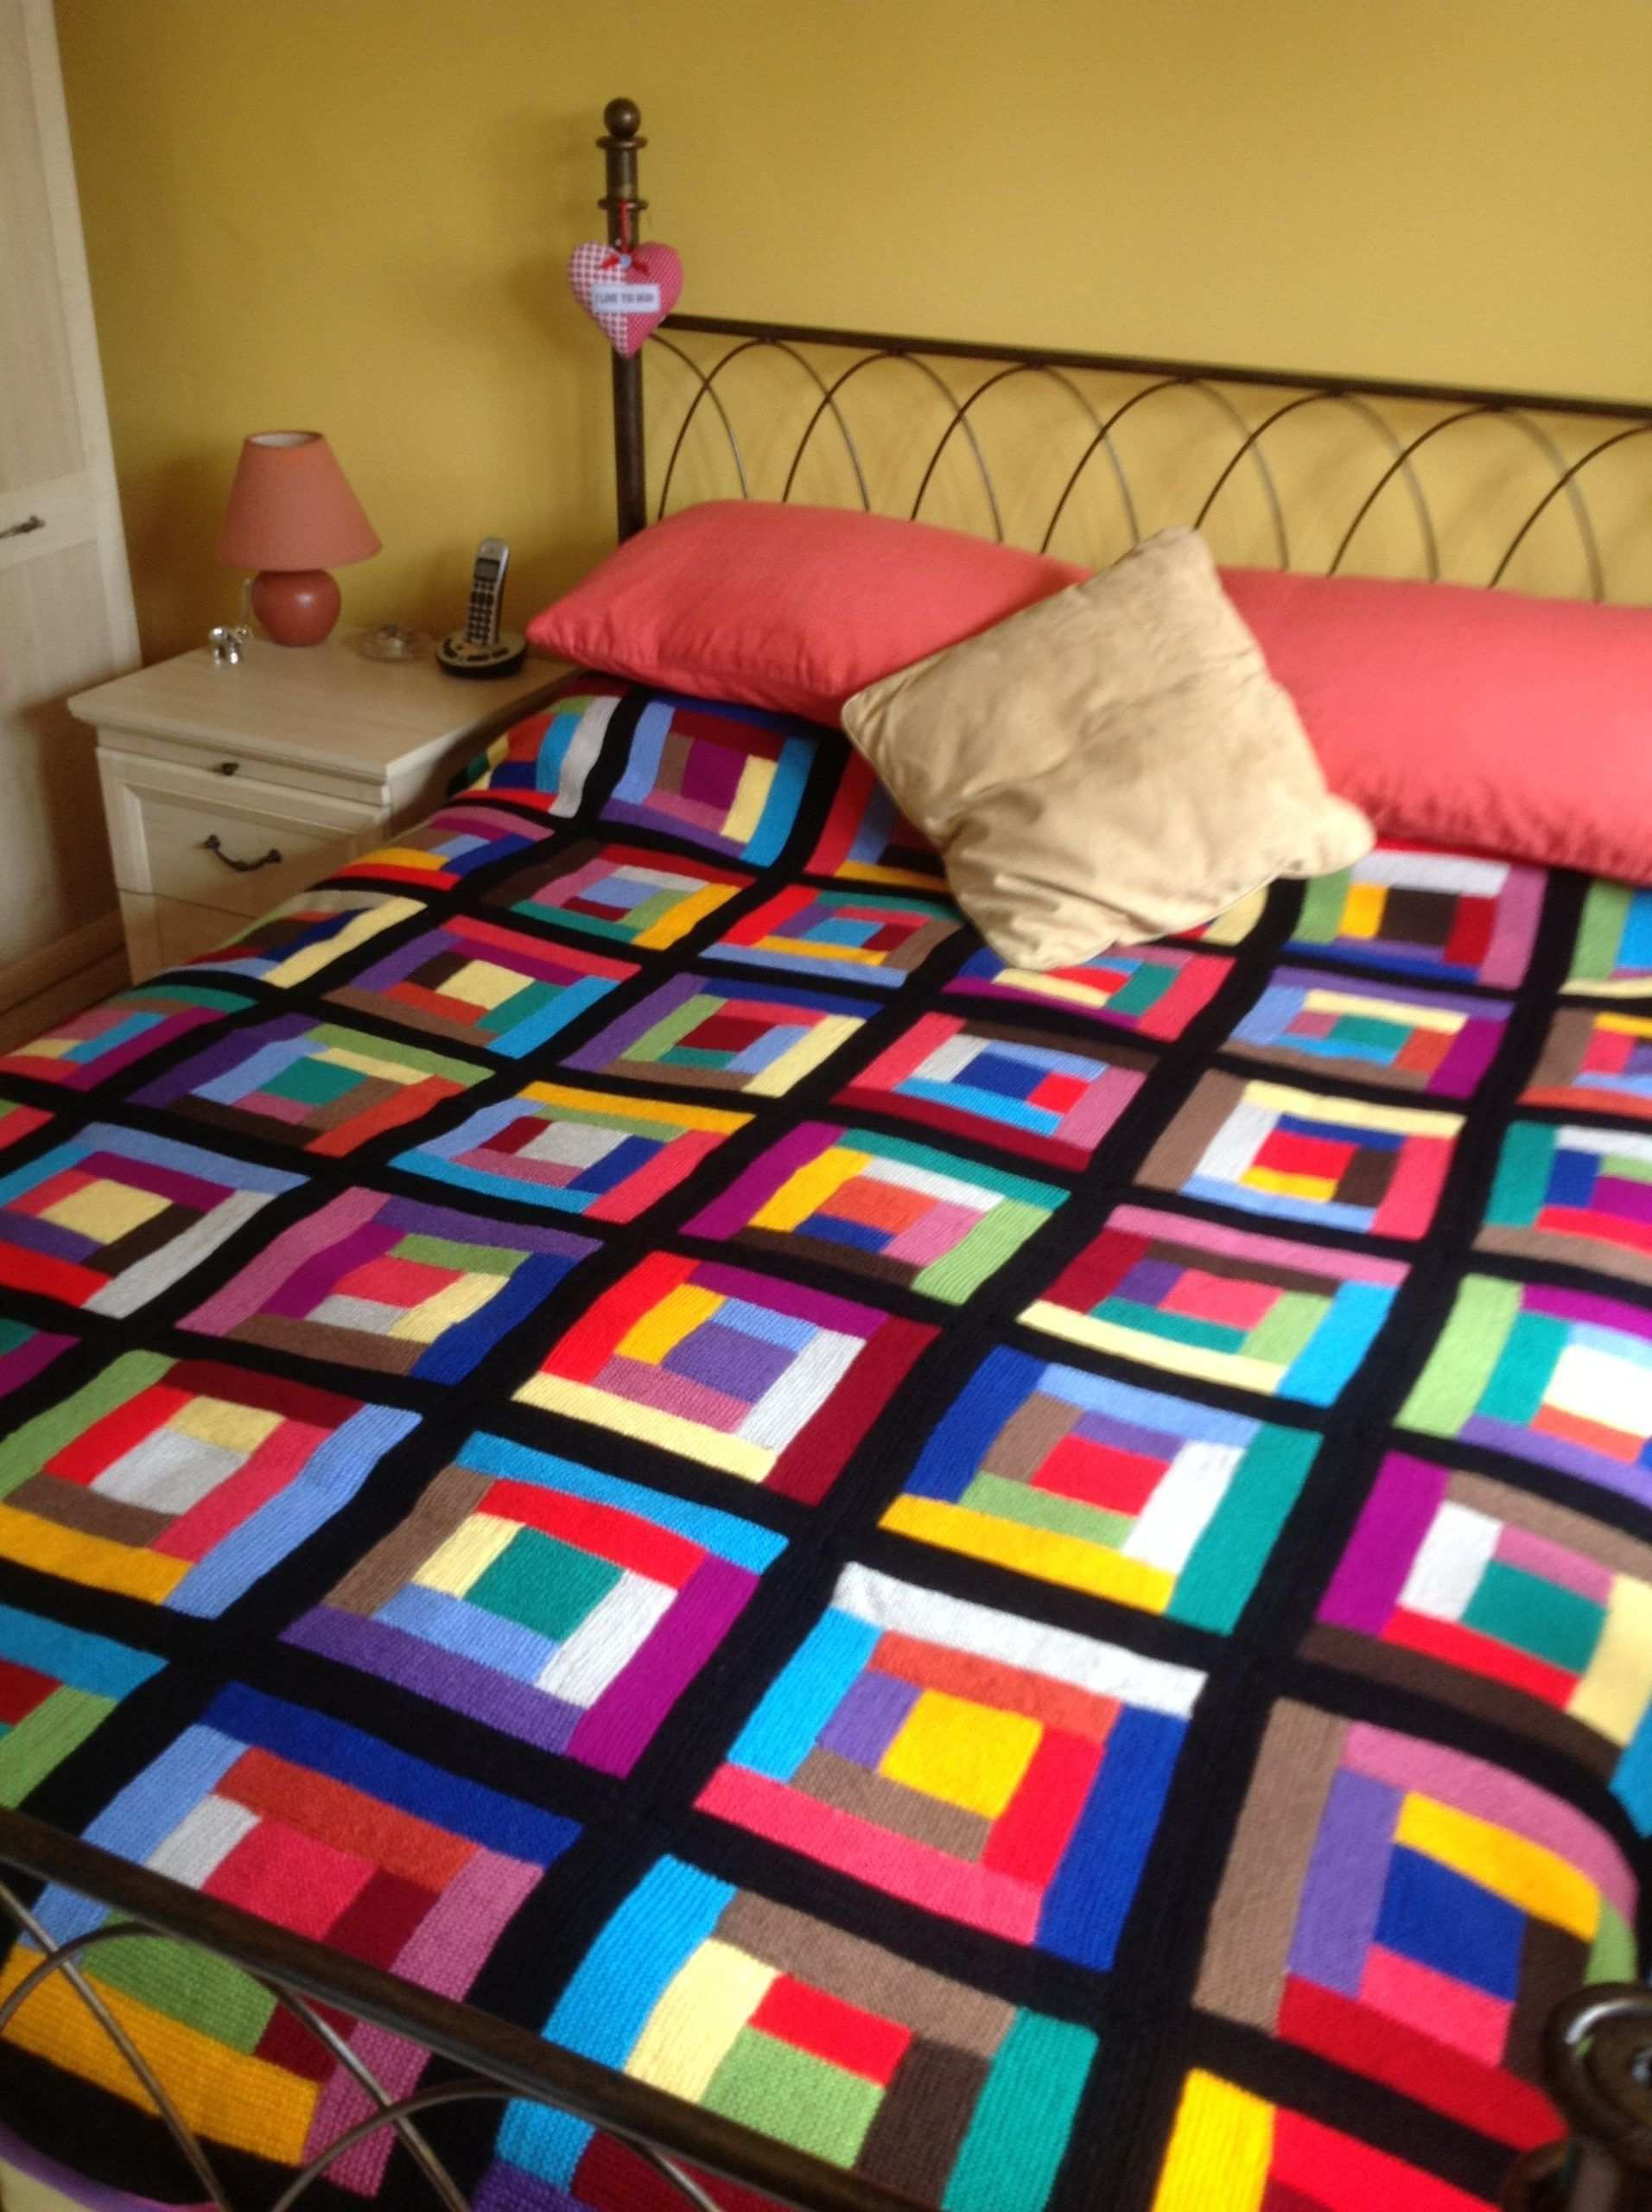 Cabin Log Design In 2020 Knitted Blankets Knitting Projects Blanket Log Cabin Quilt Pattern